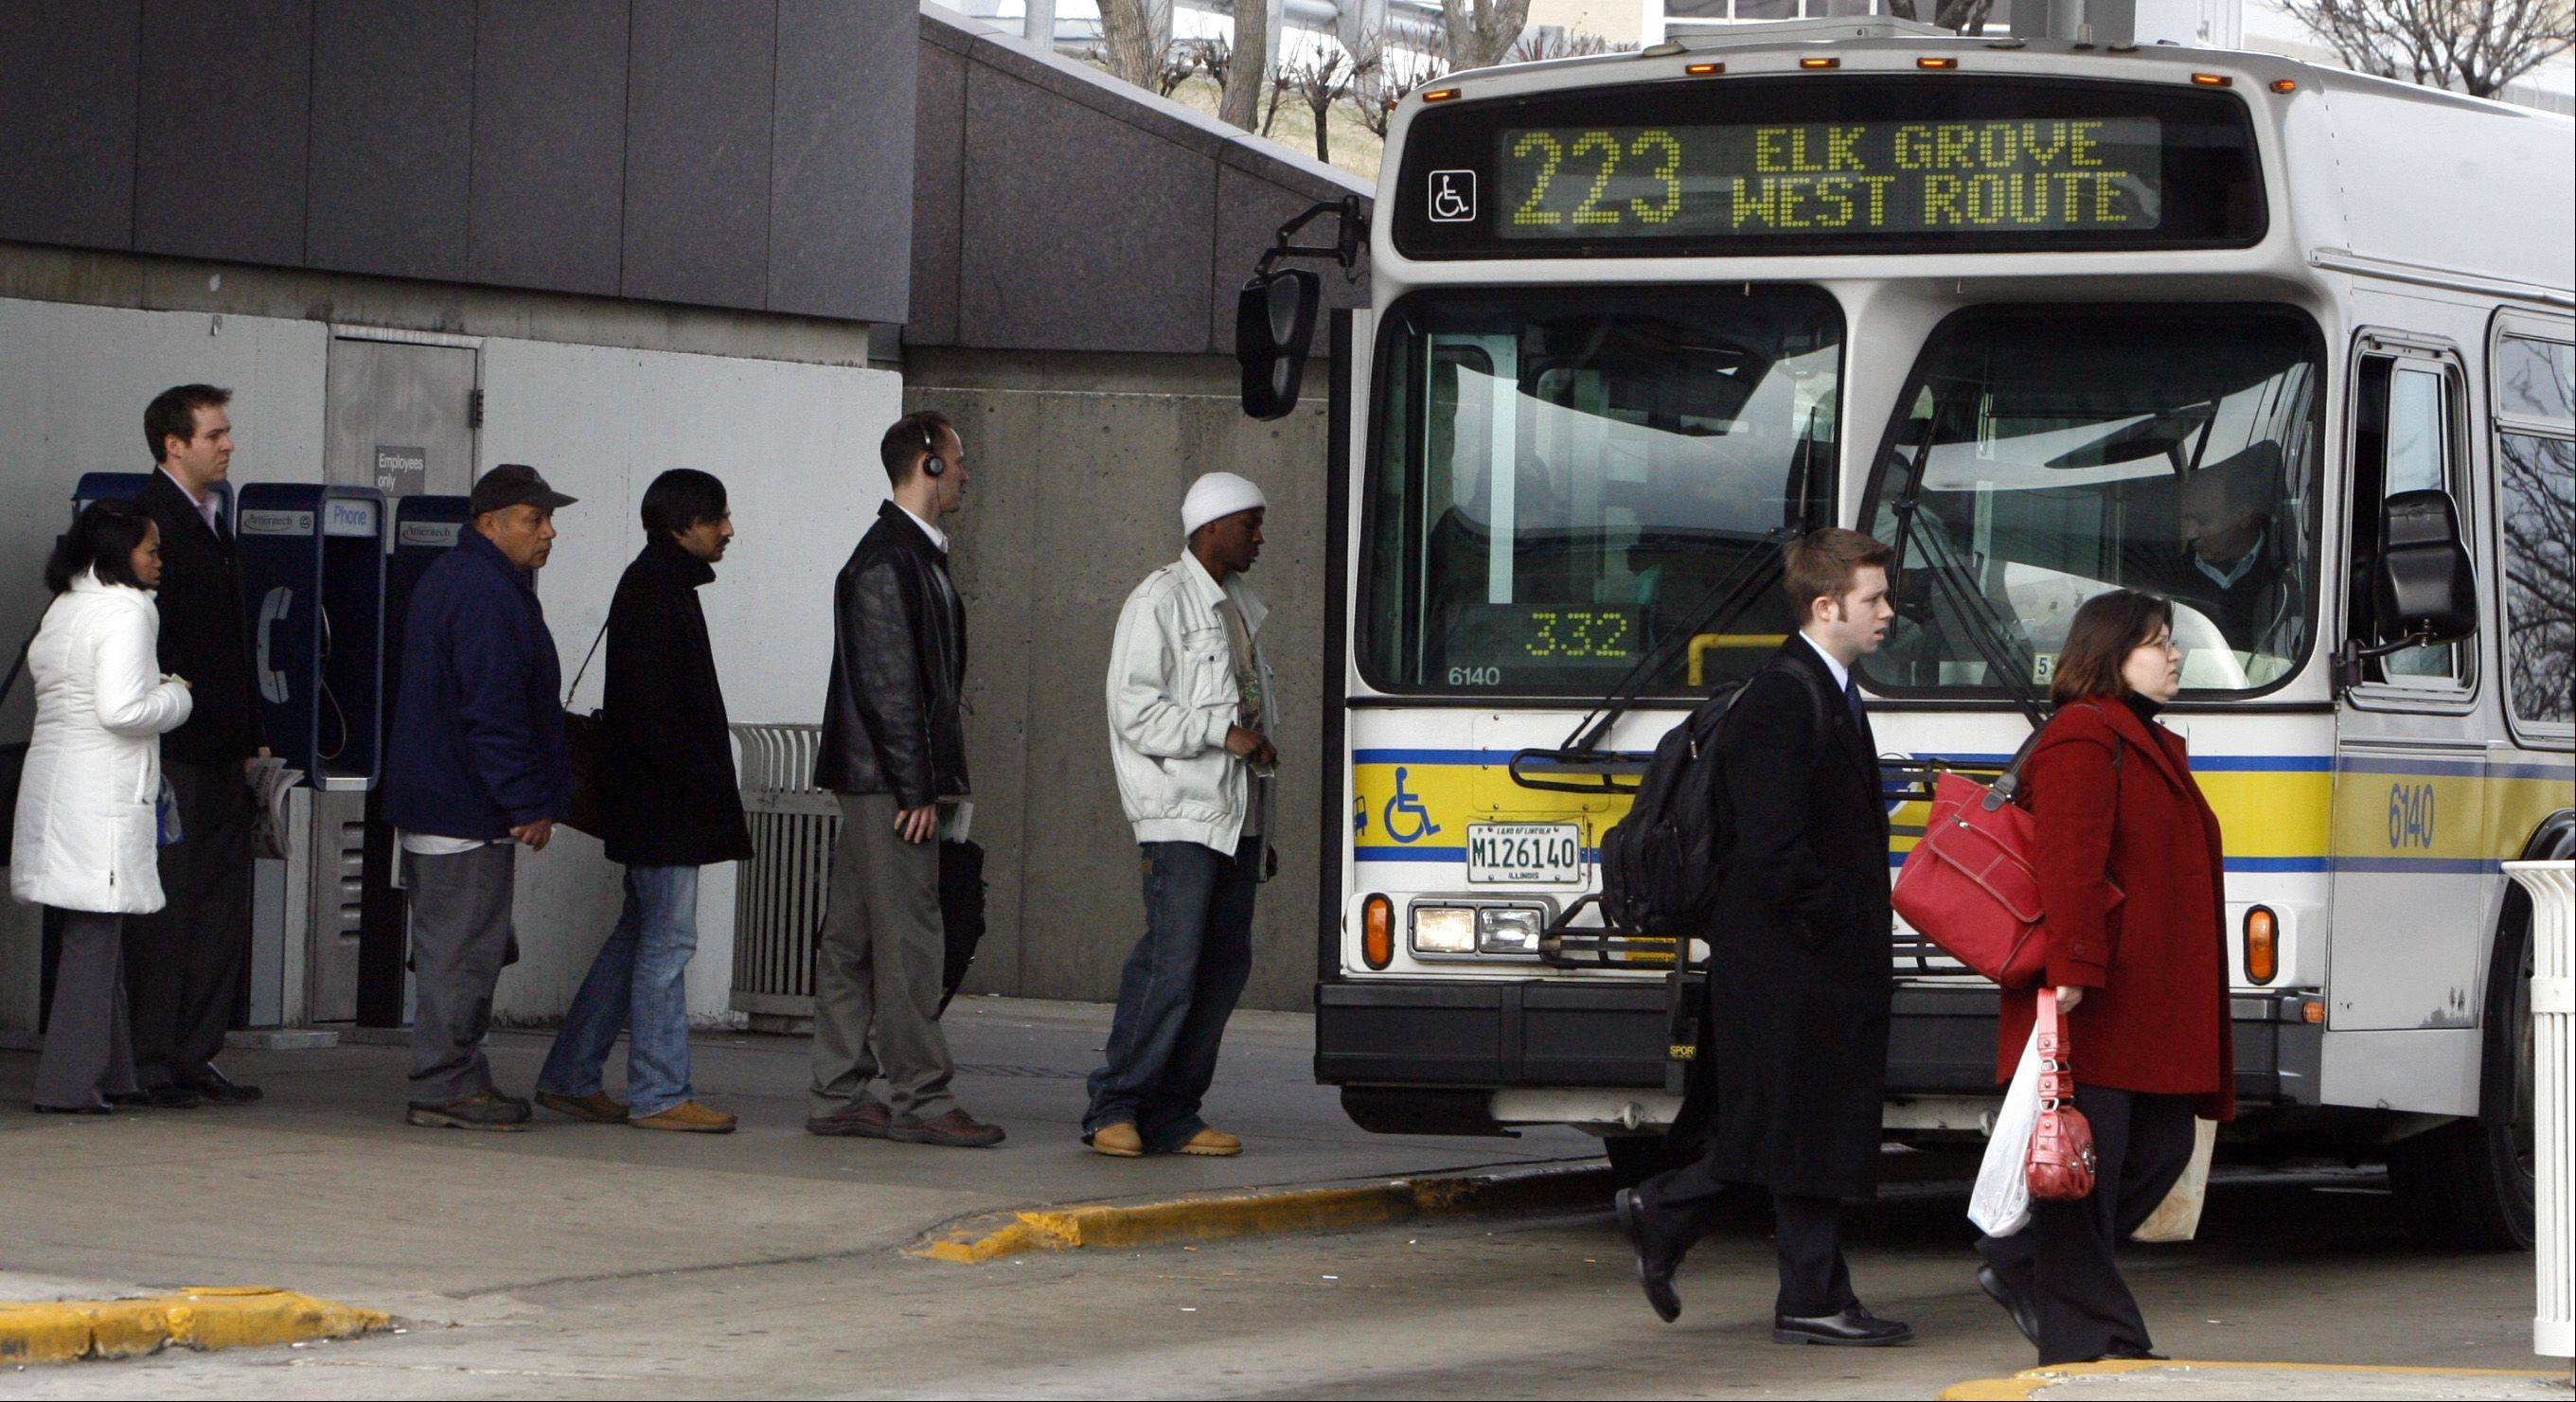 Transportation leaders gathered Monday to discuss how to pay for better transit and roads.